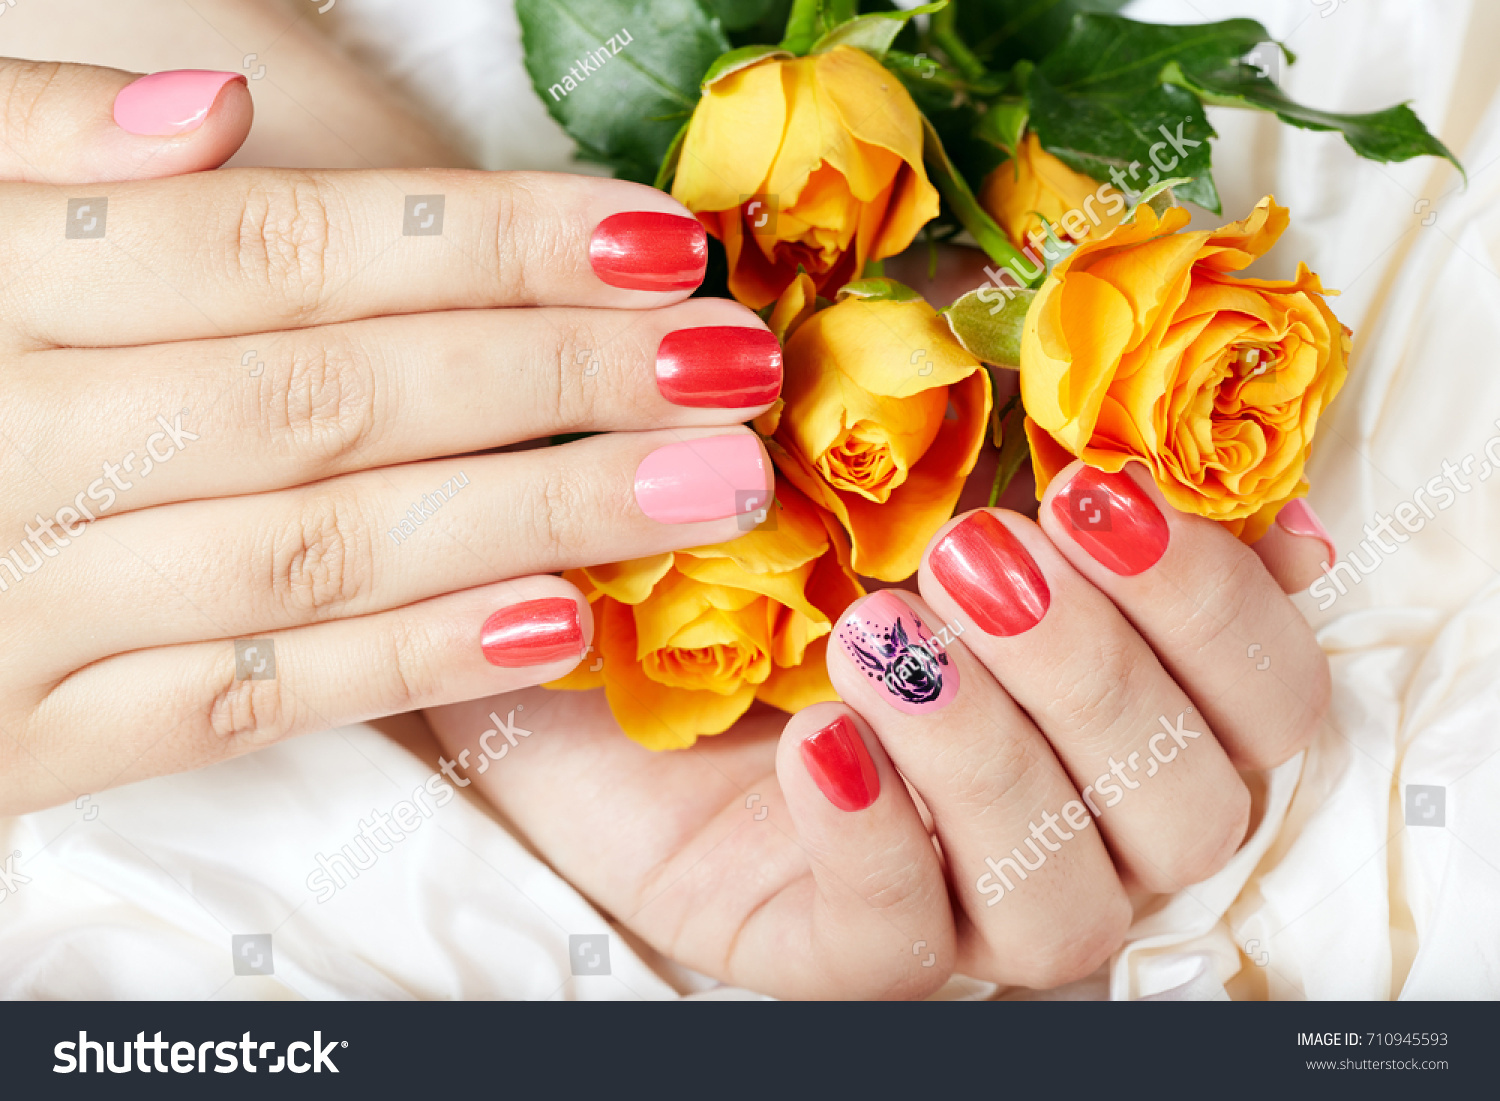 Hands Short Manicured Nails Colored Pink Stock Photo (100% Legal ...